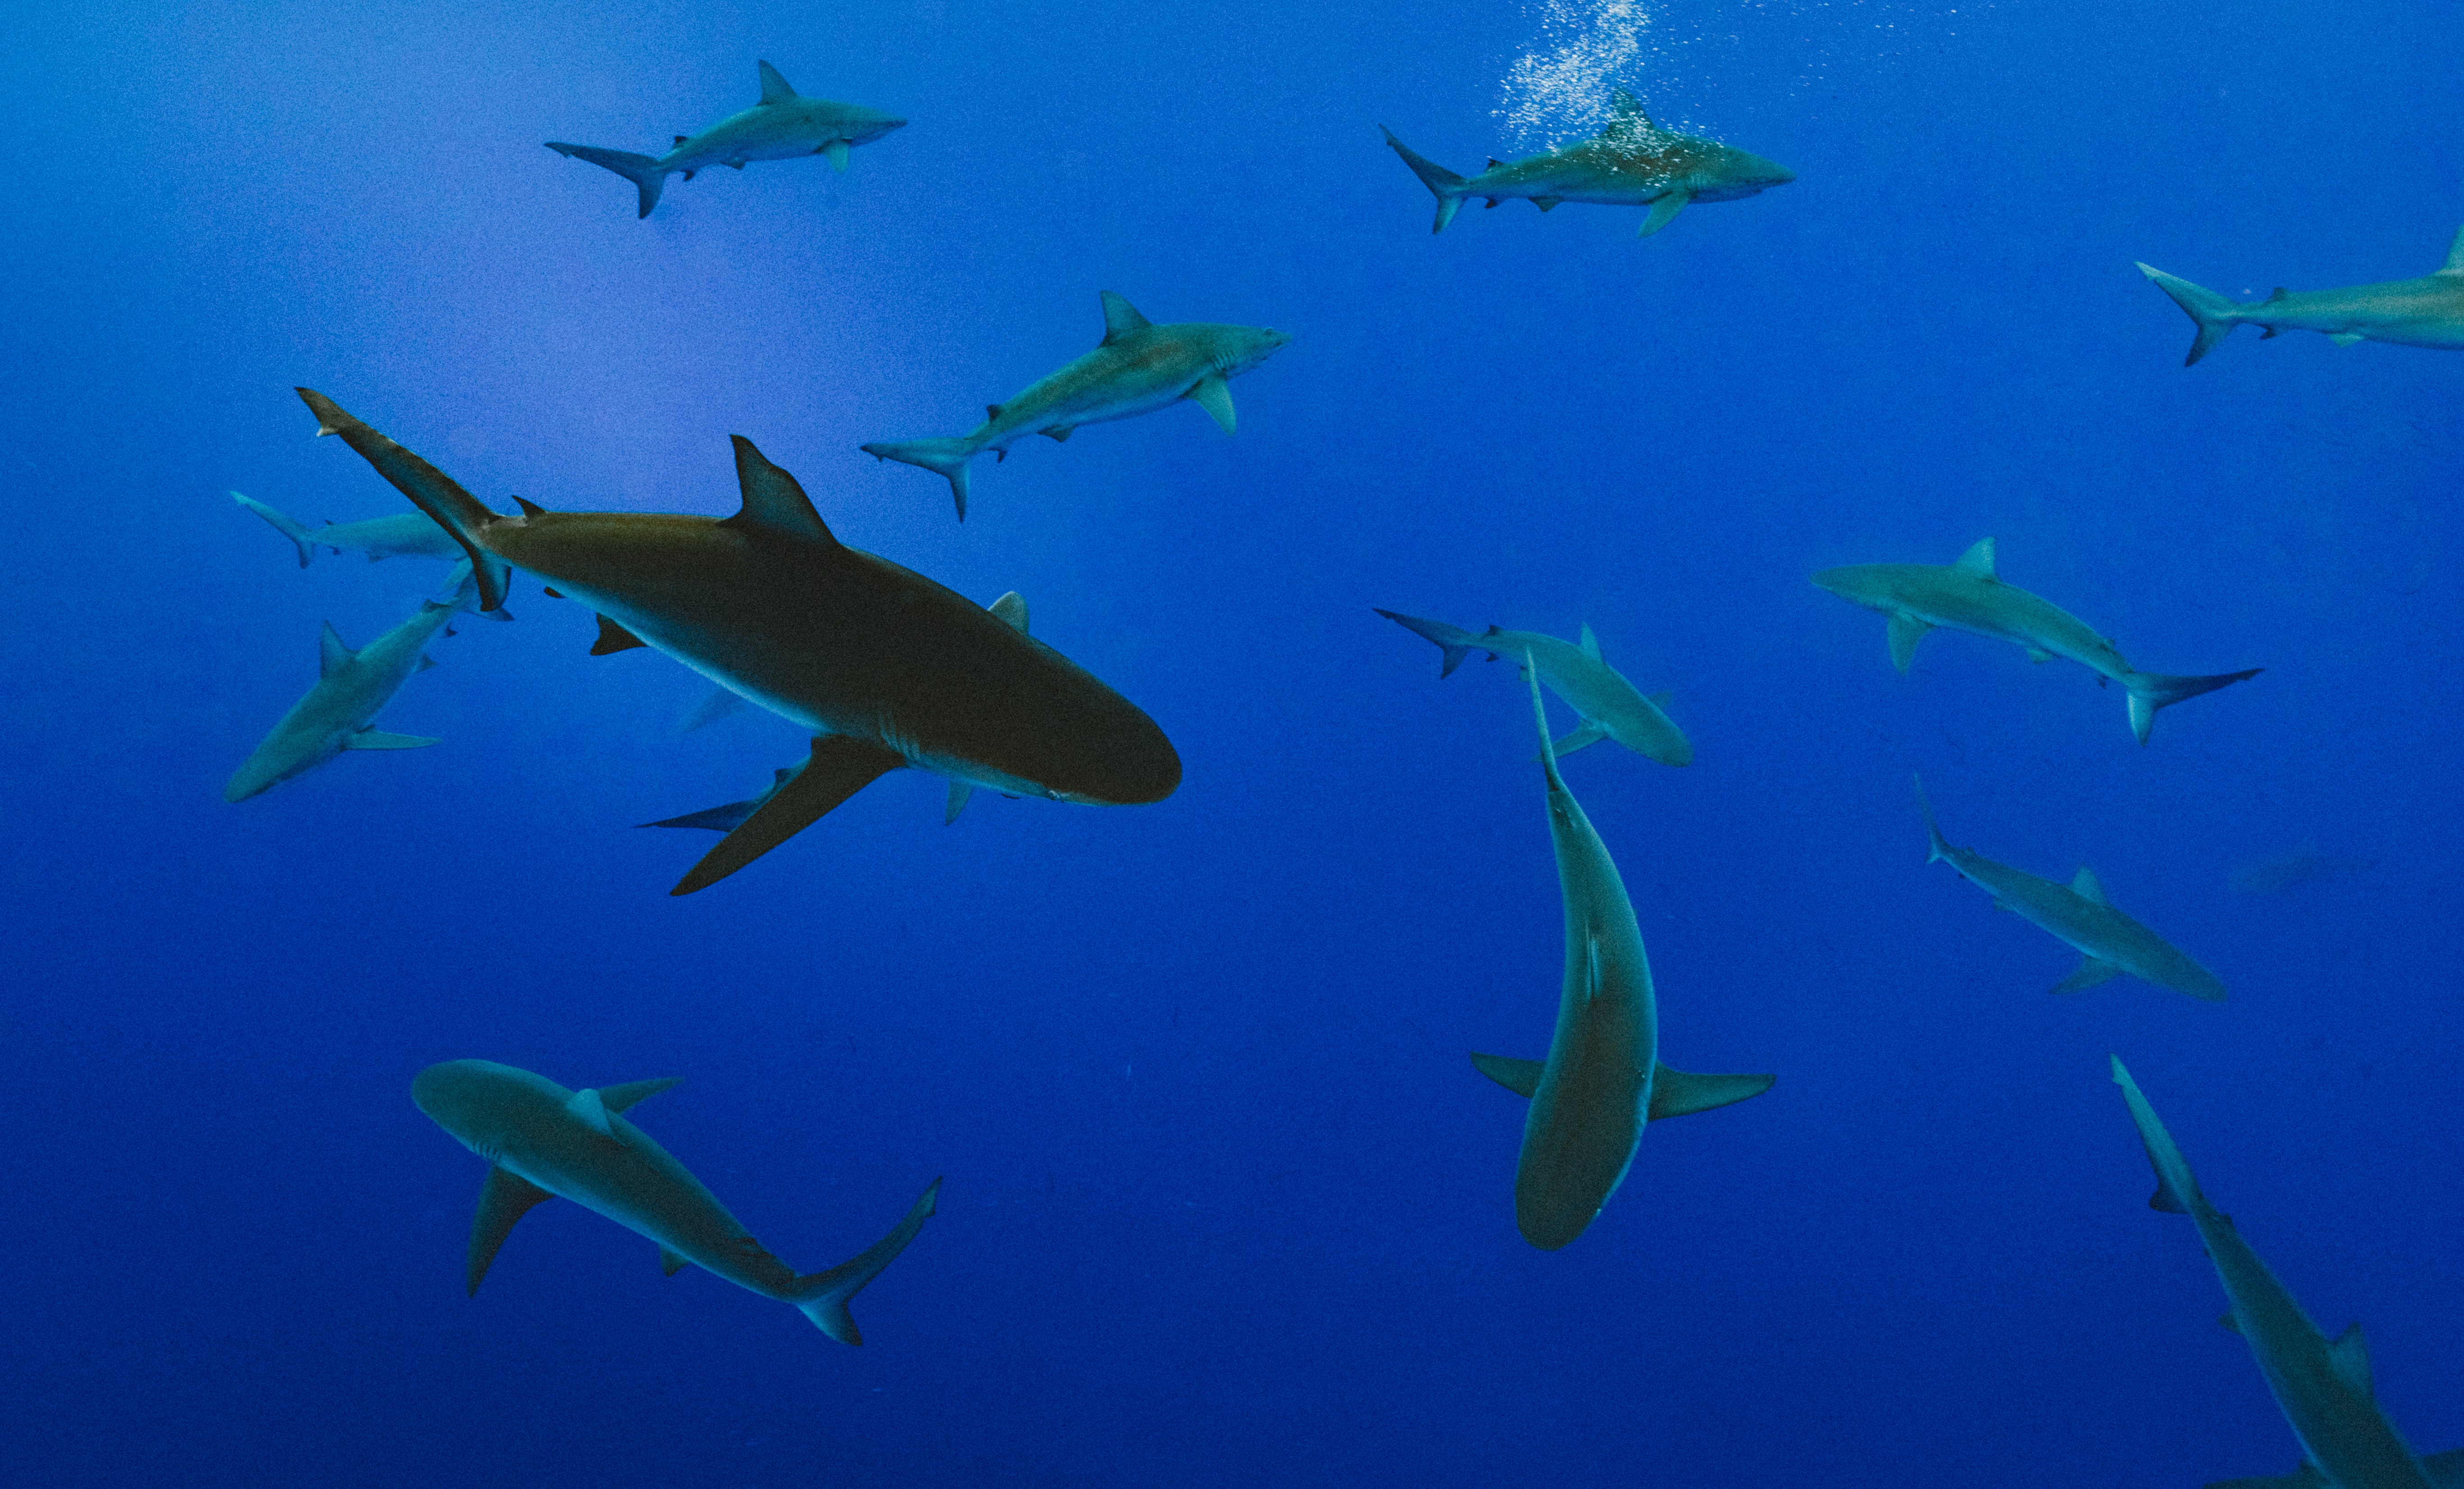 Multiple sharks swimming underwater in clear blue sea